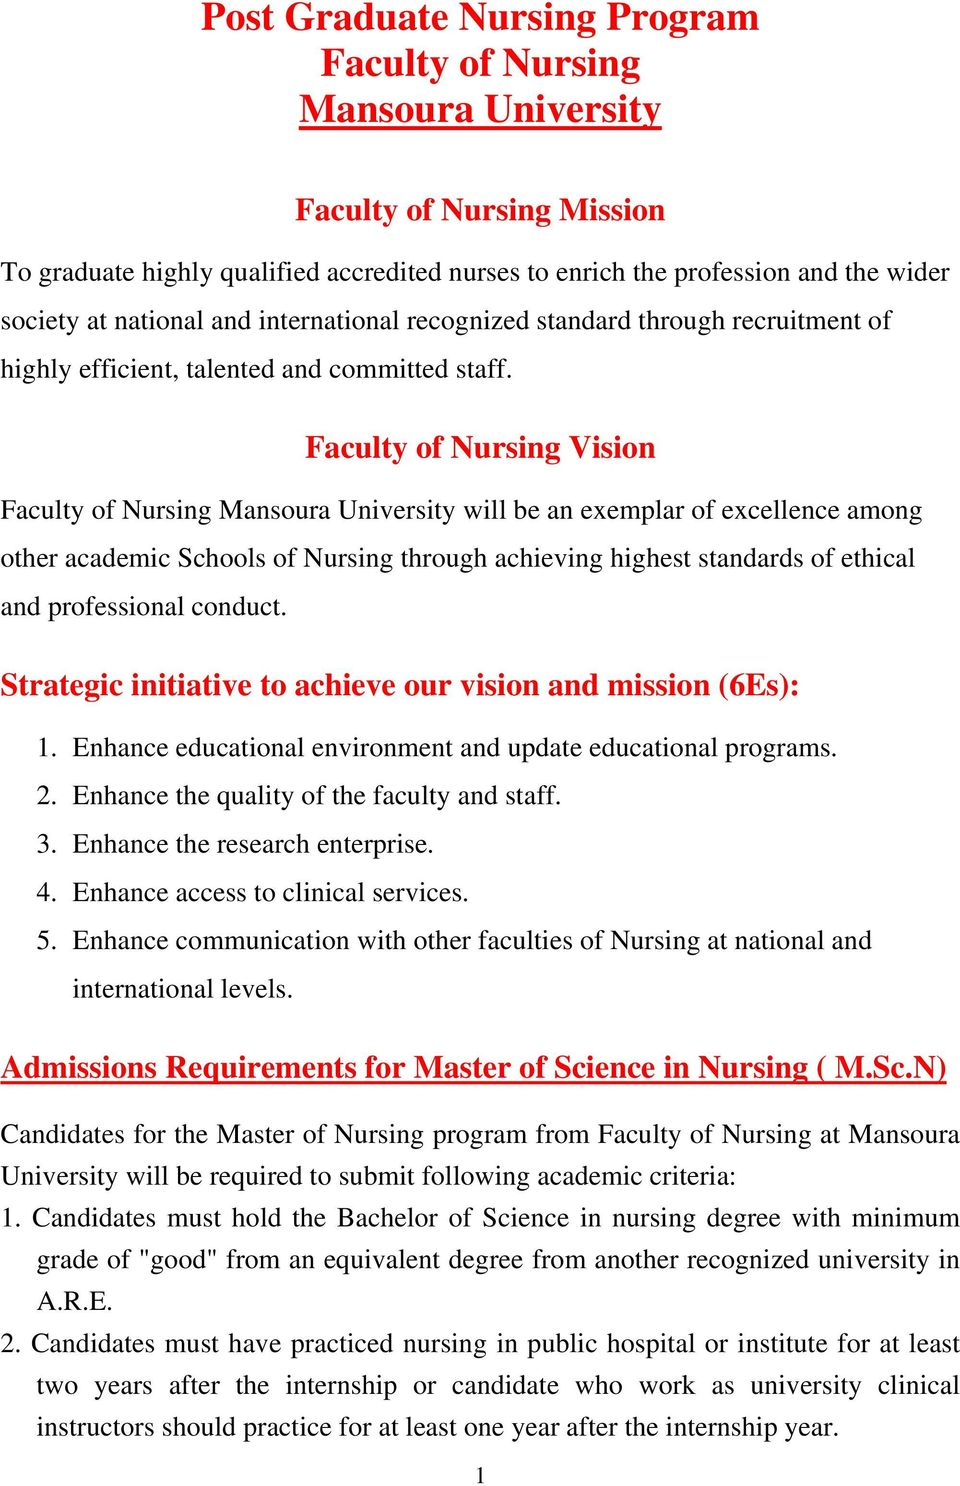 Faculty of Nursing Vision Faculty of Nursing Mansoura University will be an exemplar of excellence among other academic Schools of Nursing through achieving highest standards of ethical and